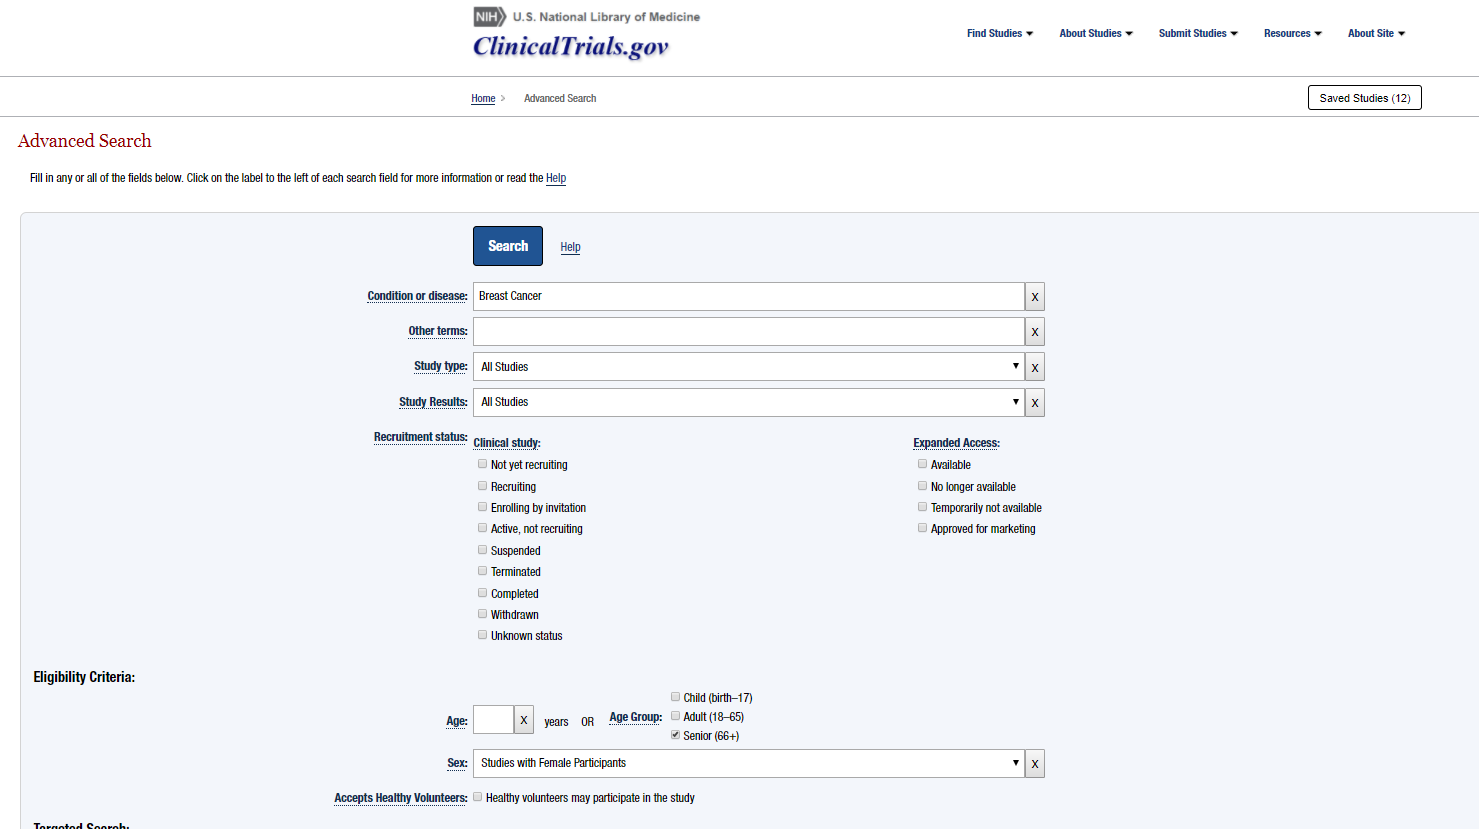 Clinicaltrials.gov Advanced Search